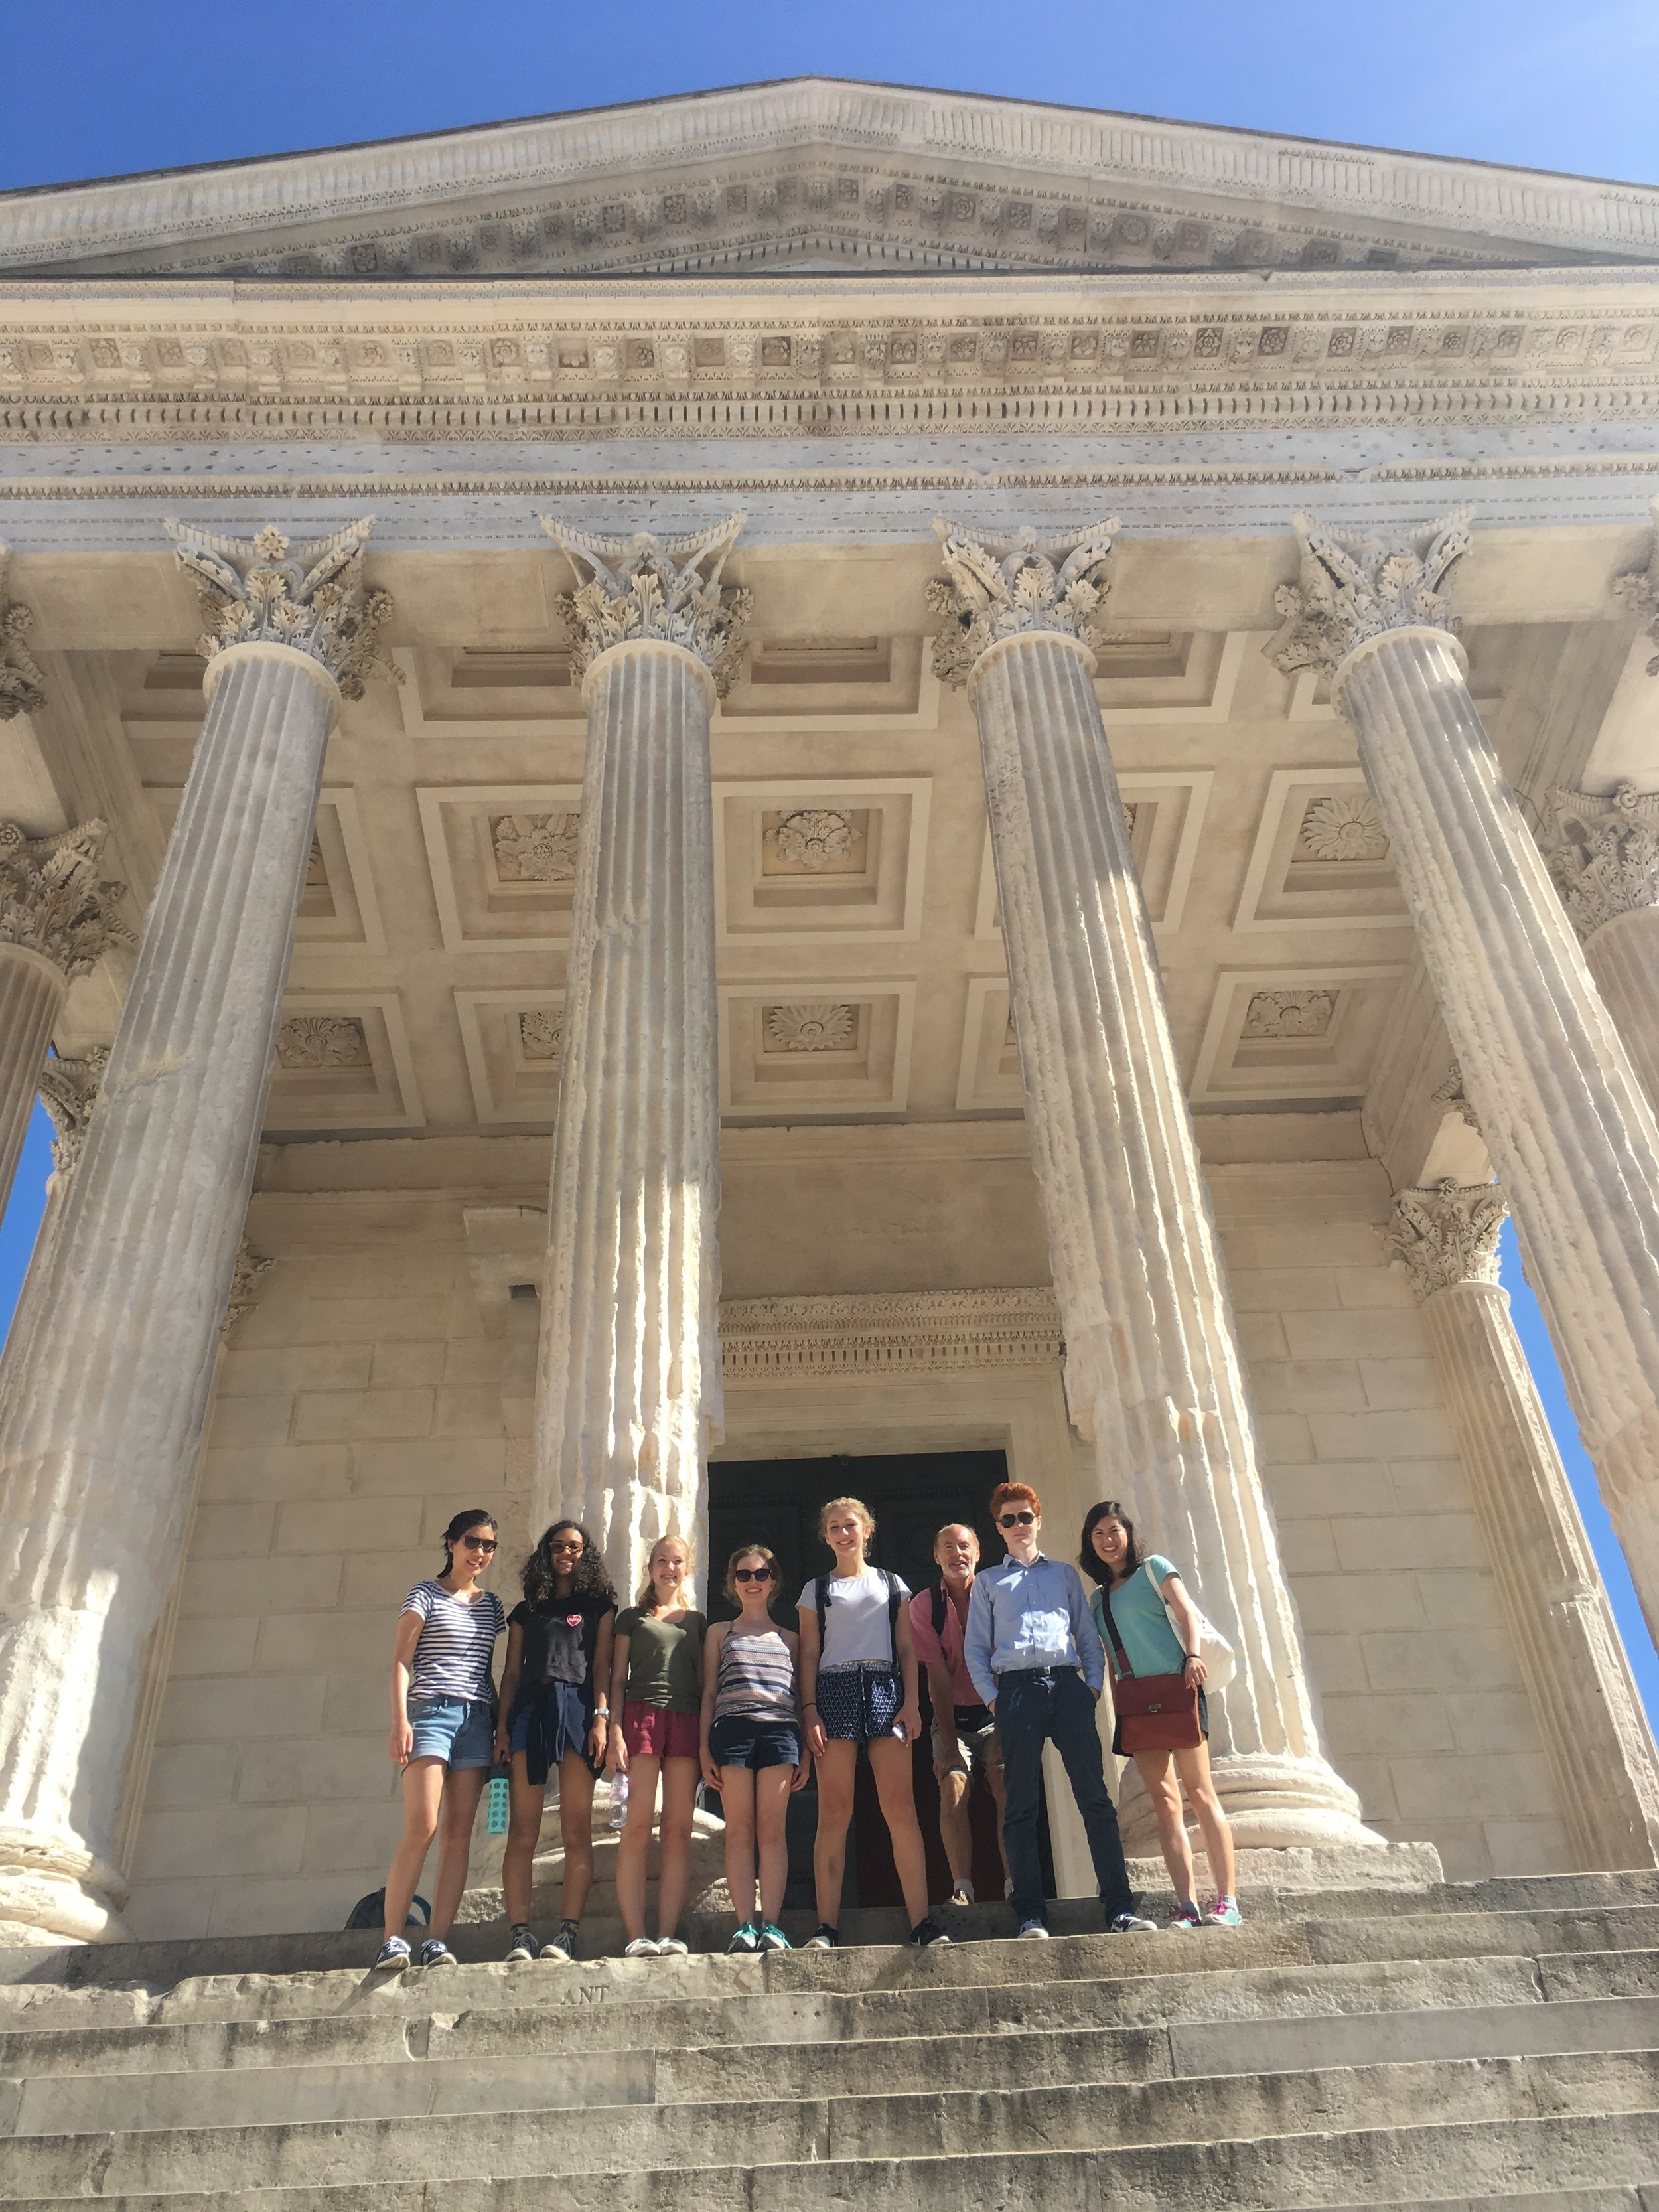 All together in front of the Maison Carrée temple in Nîmes after a long scavenger hunt.